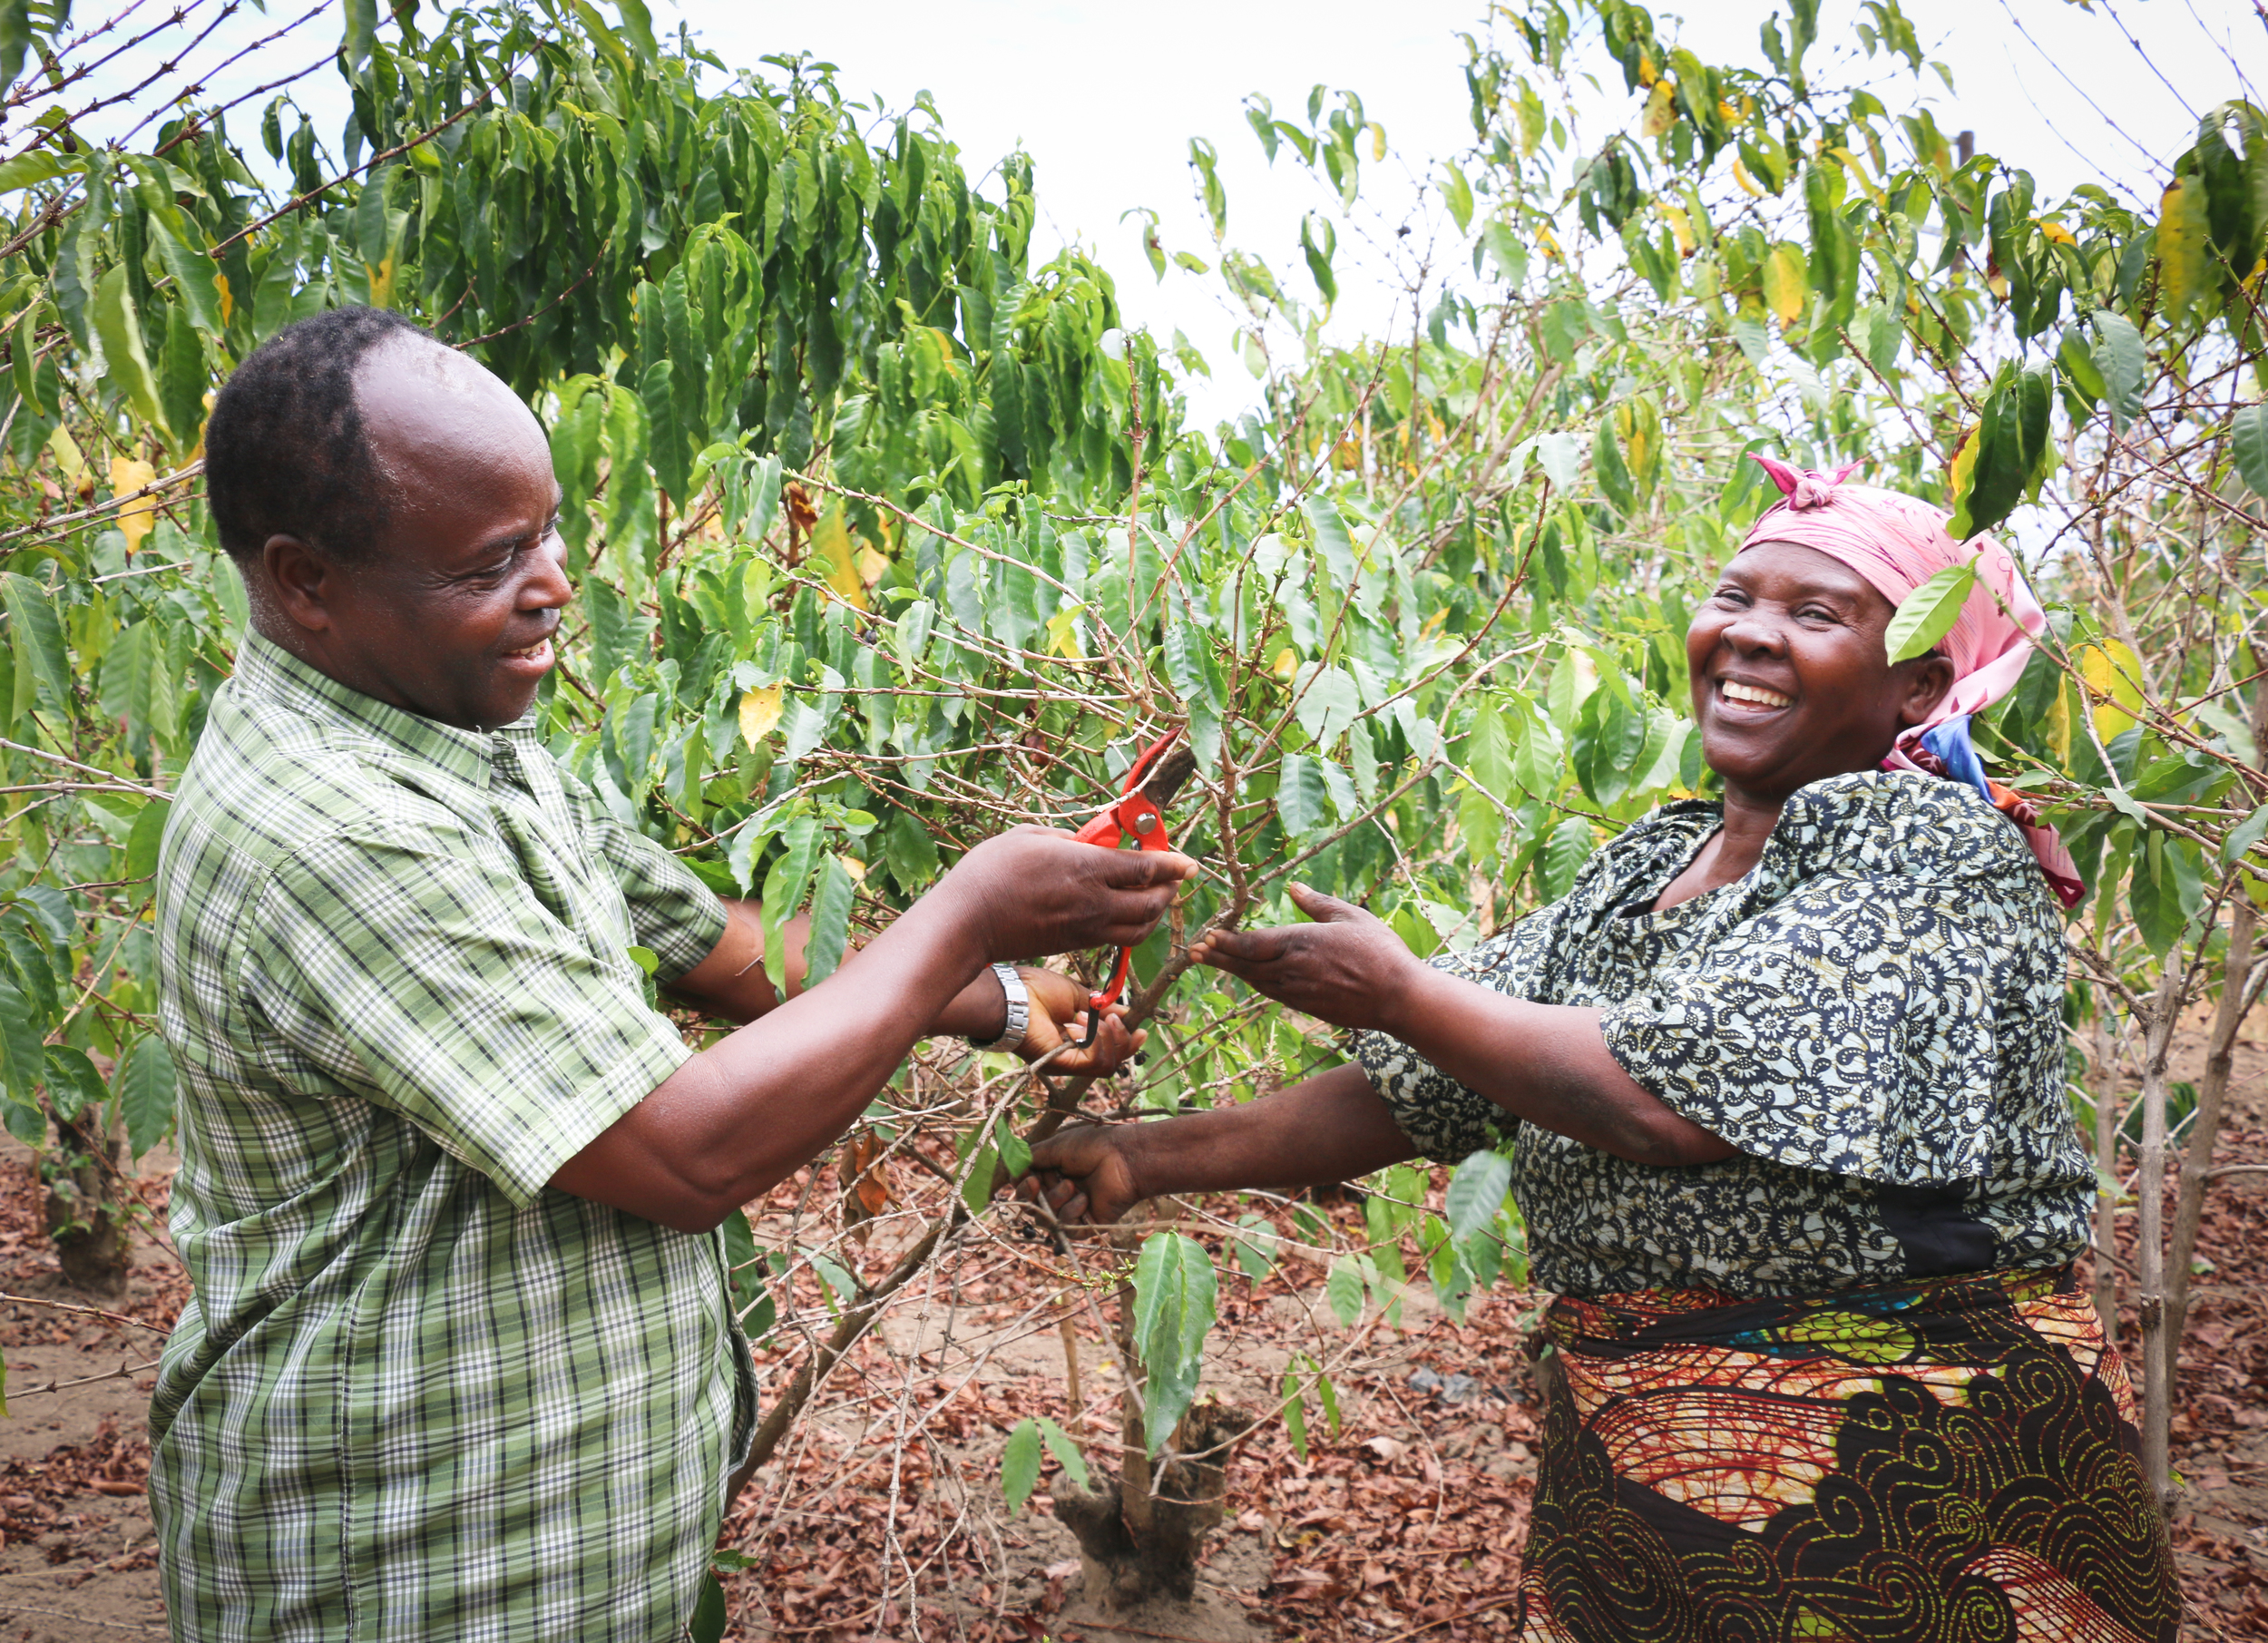 We buy in  micro-lots  from small holder farmers from the major coffee producing regions of Tanzania such as  Mbeya, Mbozi, Mbinga, Kilimanjaro and Kigoma.  At Ridge Cafe, we know how hard our farmers work to bring you quality coffee beans and we want to showcase each farmer's story. Our buying process is  transparent  and we are able to trace the beans we buy to each cooperative. Each time we get a new crop, we will showcase their stories here so watch this space!